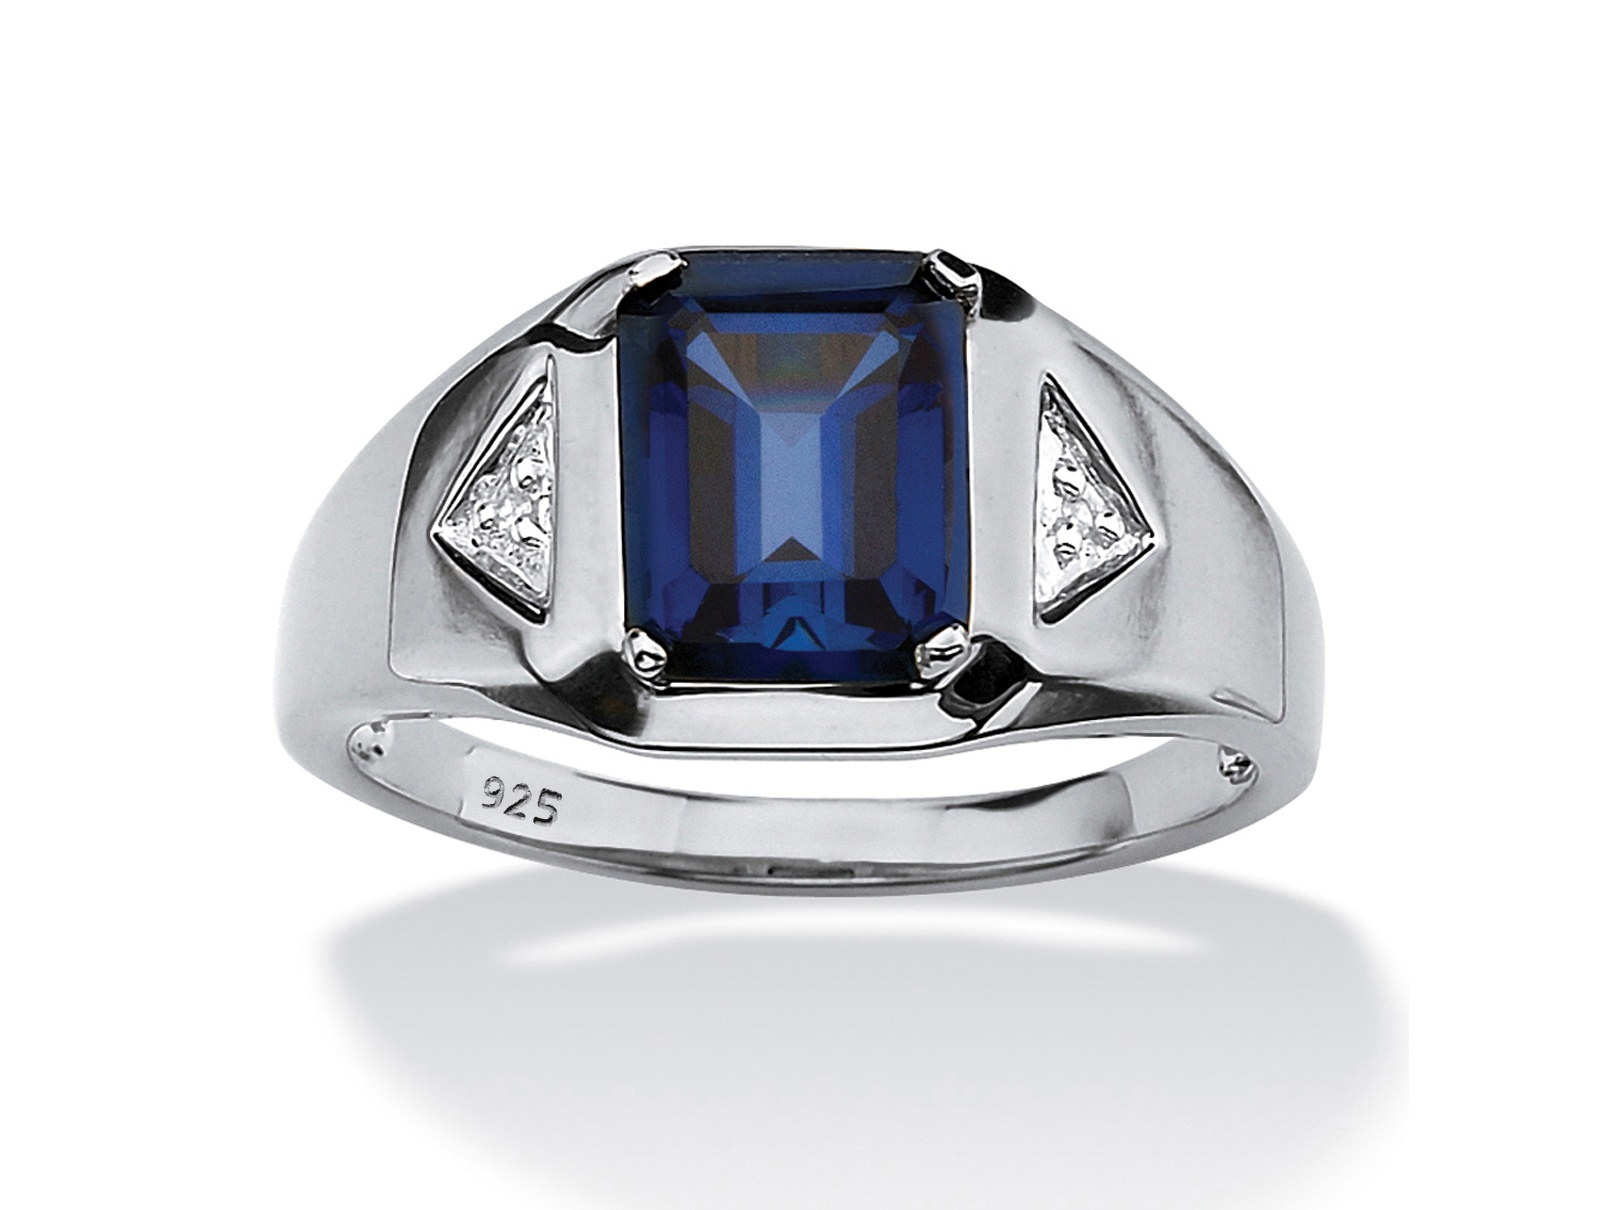 Men's 2.75 TCW Emerald-Cut Sapphire and Diamond Accented Ring in Platinum over Sterling Silver by PalmBeach Jewelry